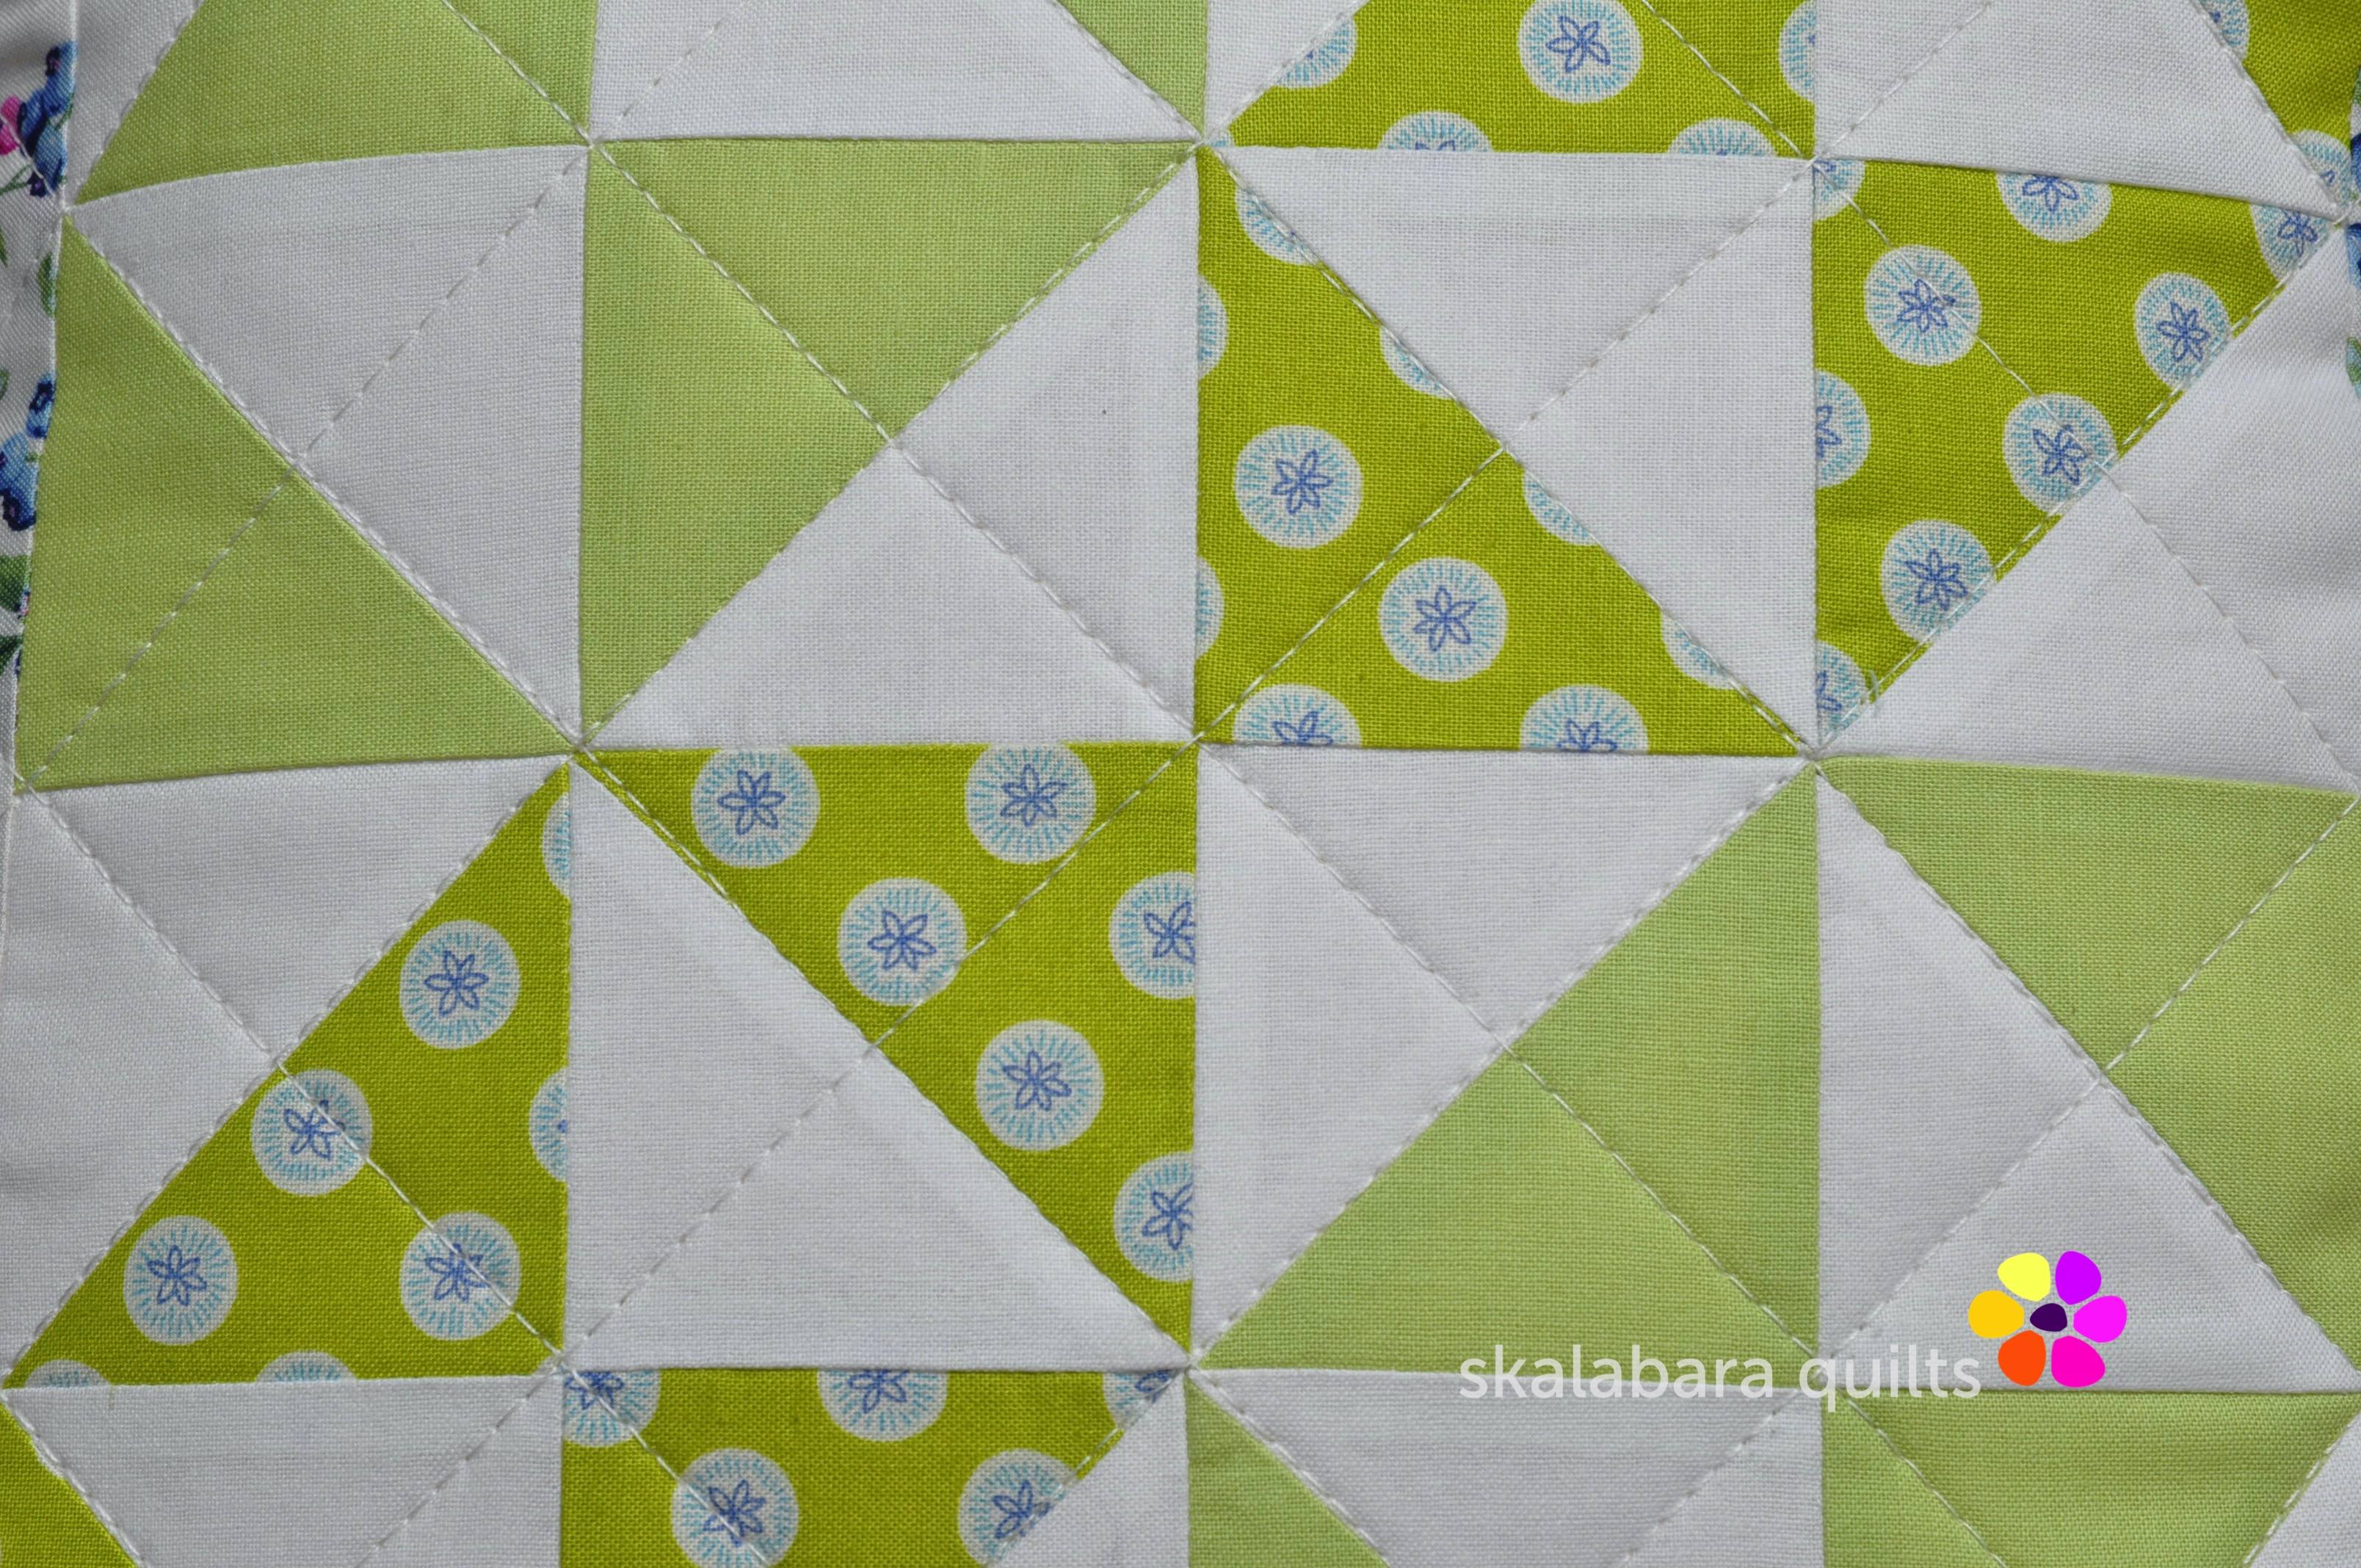 broken dishes cushions detail 2 - skalabara quilts